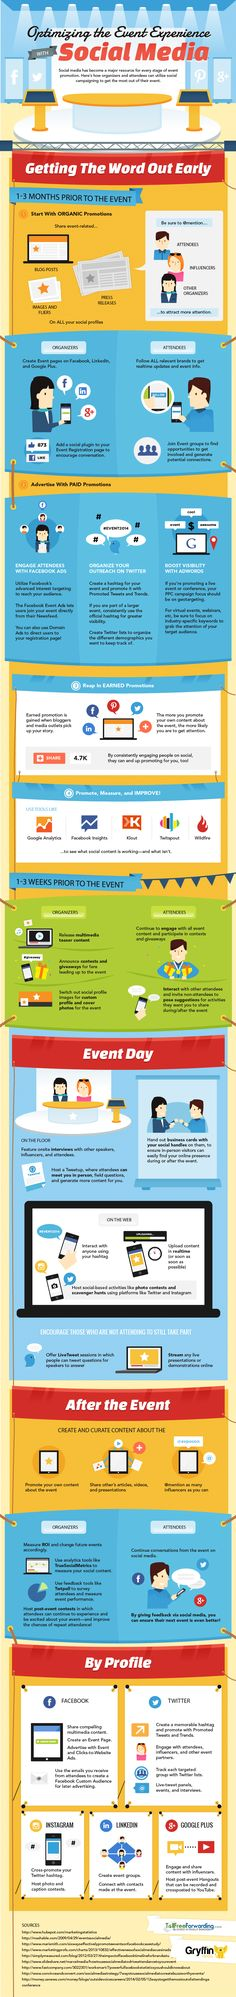 How To Use Social Media To Promote Events - #Infographic #SocialMediaMarketing